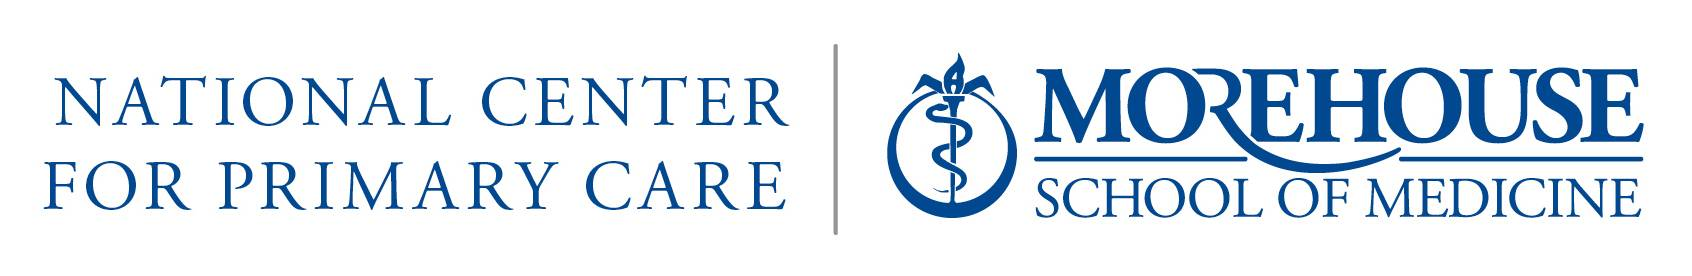 Morehouse School of Medicine National Center for Primary Care logo